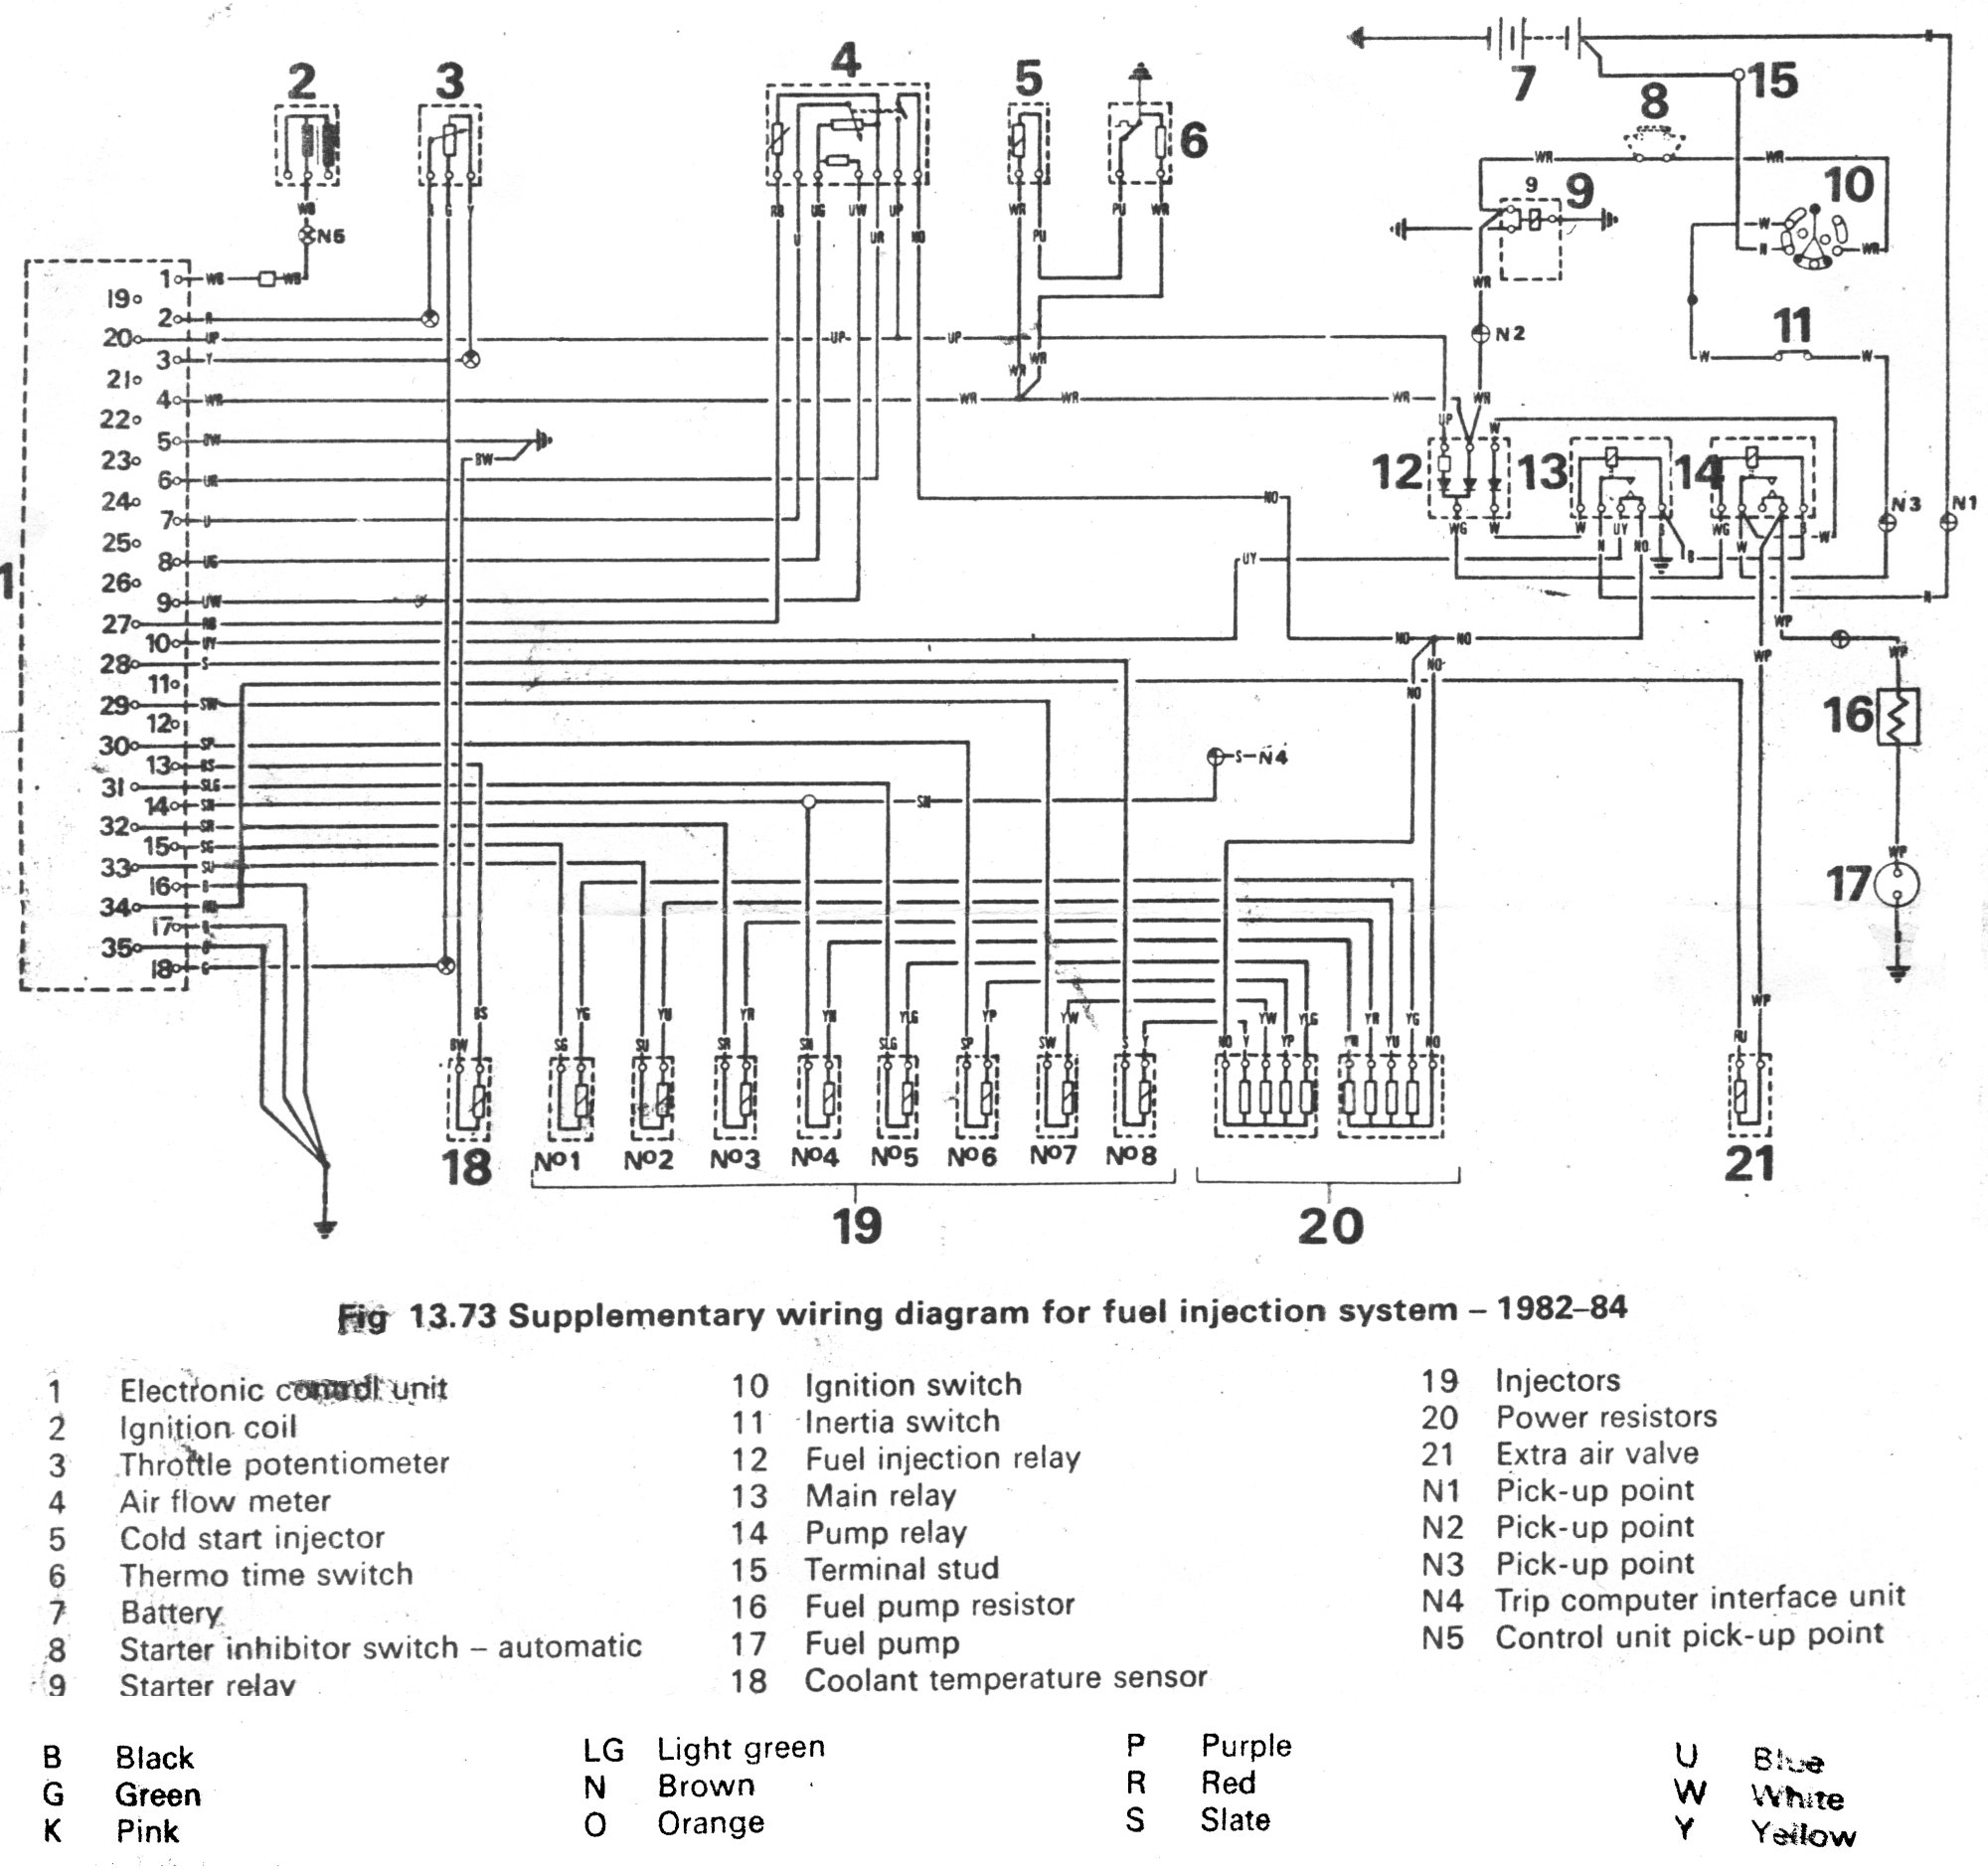 V8 flapper efi wiring diagram. Please!!! - Discovery Forum - LR4x4